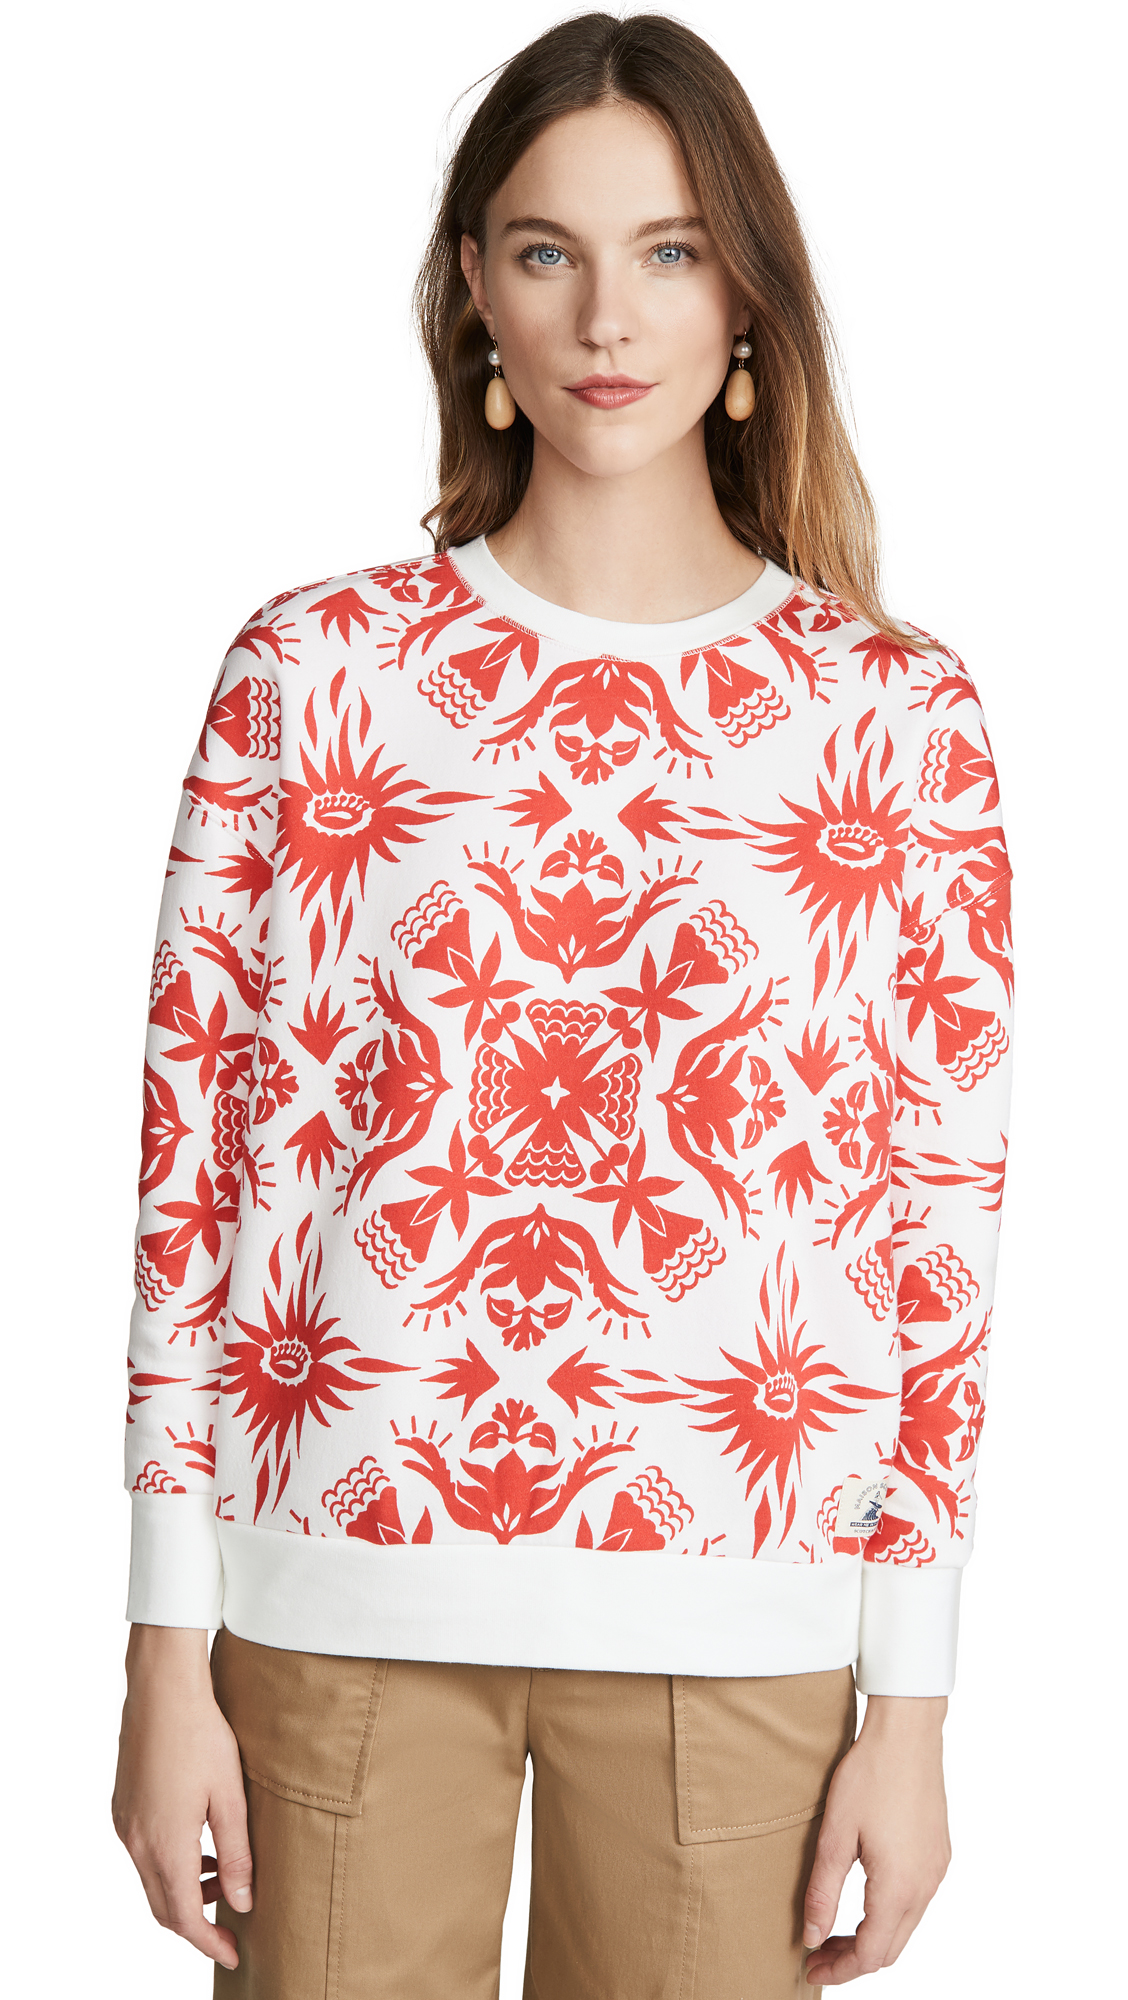 Buy Scotch & Soda/Maison Scotch online - photo of Scotch & Soda/Maison Scotch Printed Crew Neck Sweatshirt